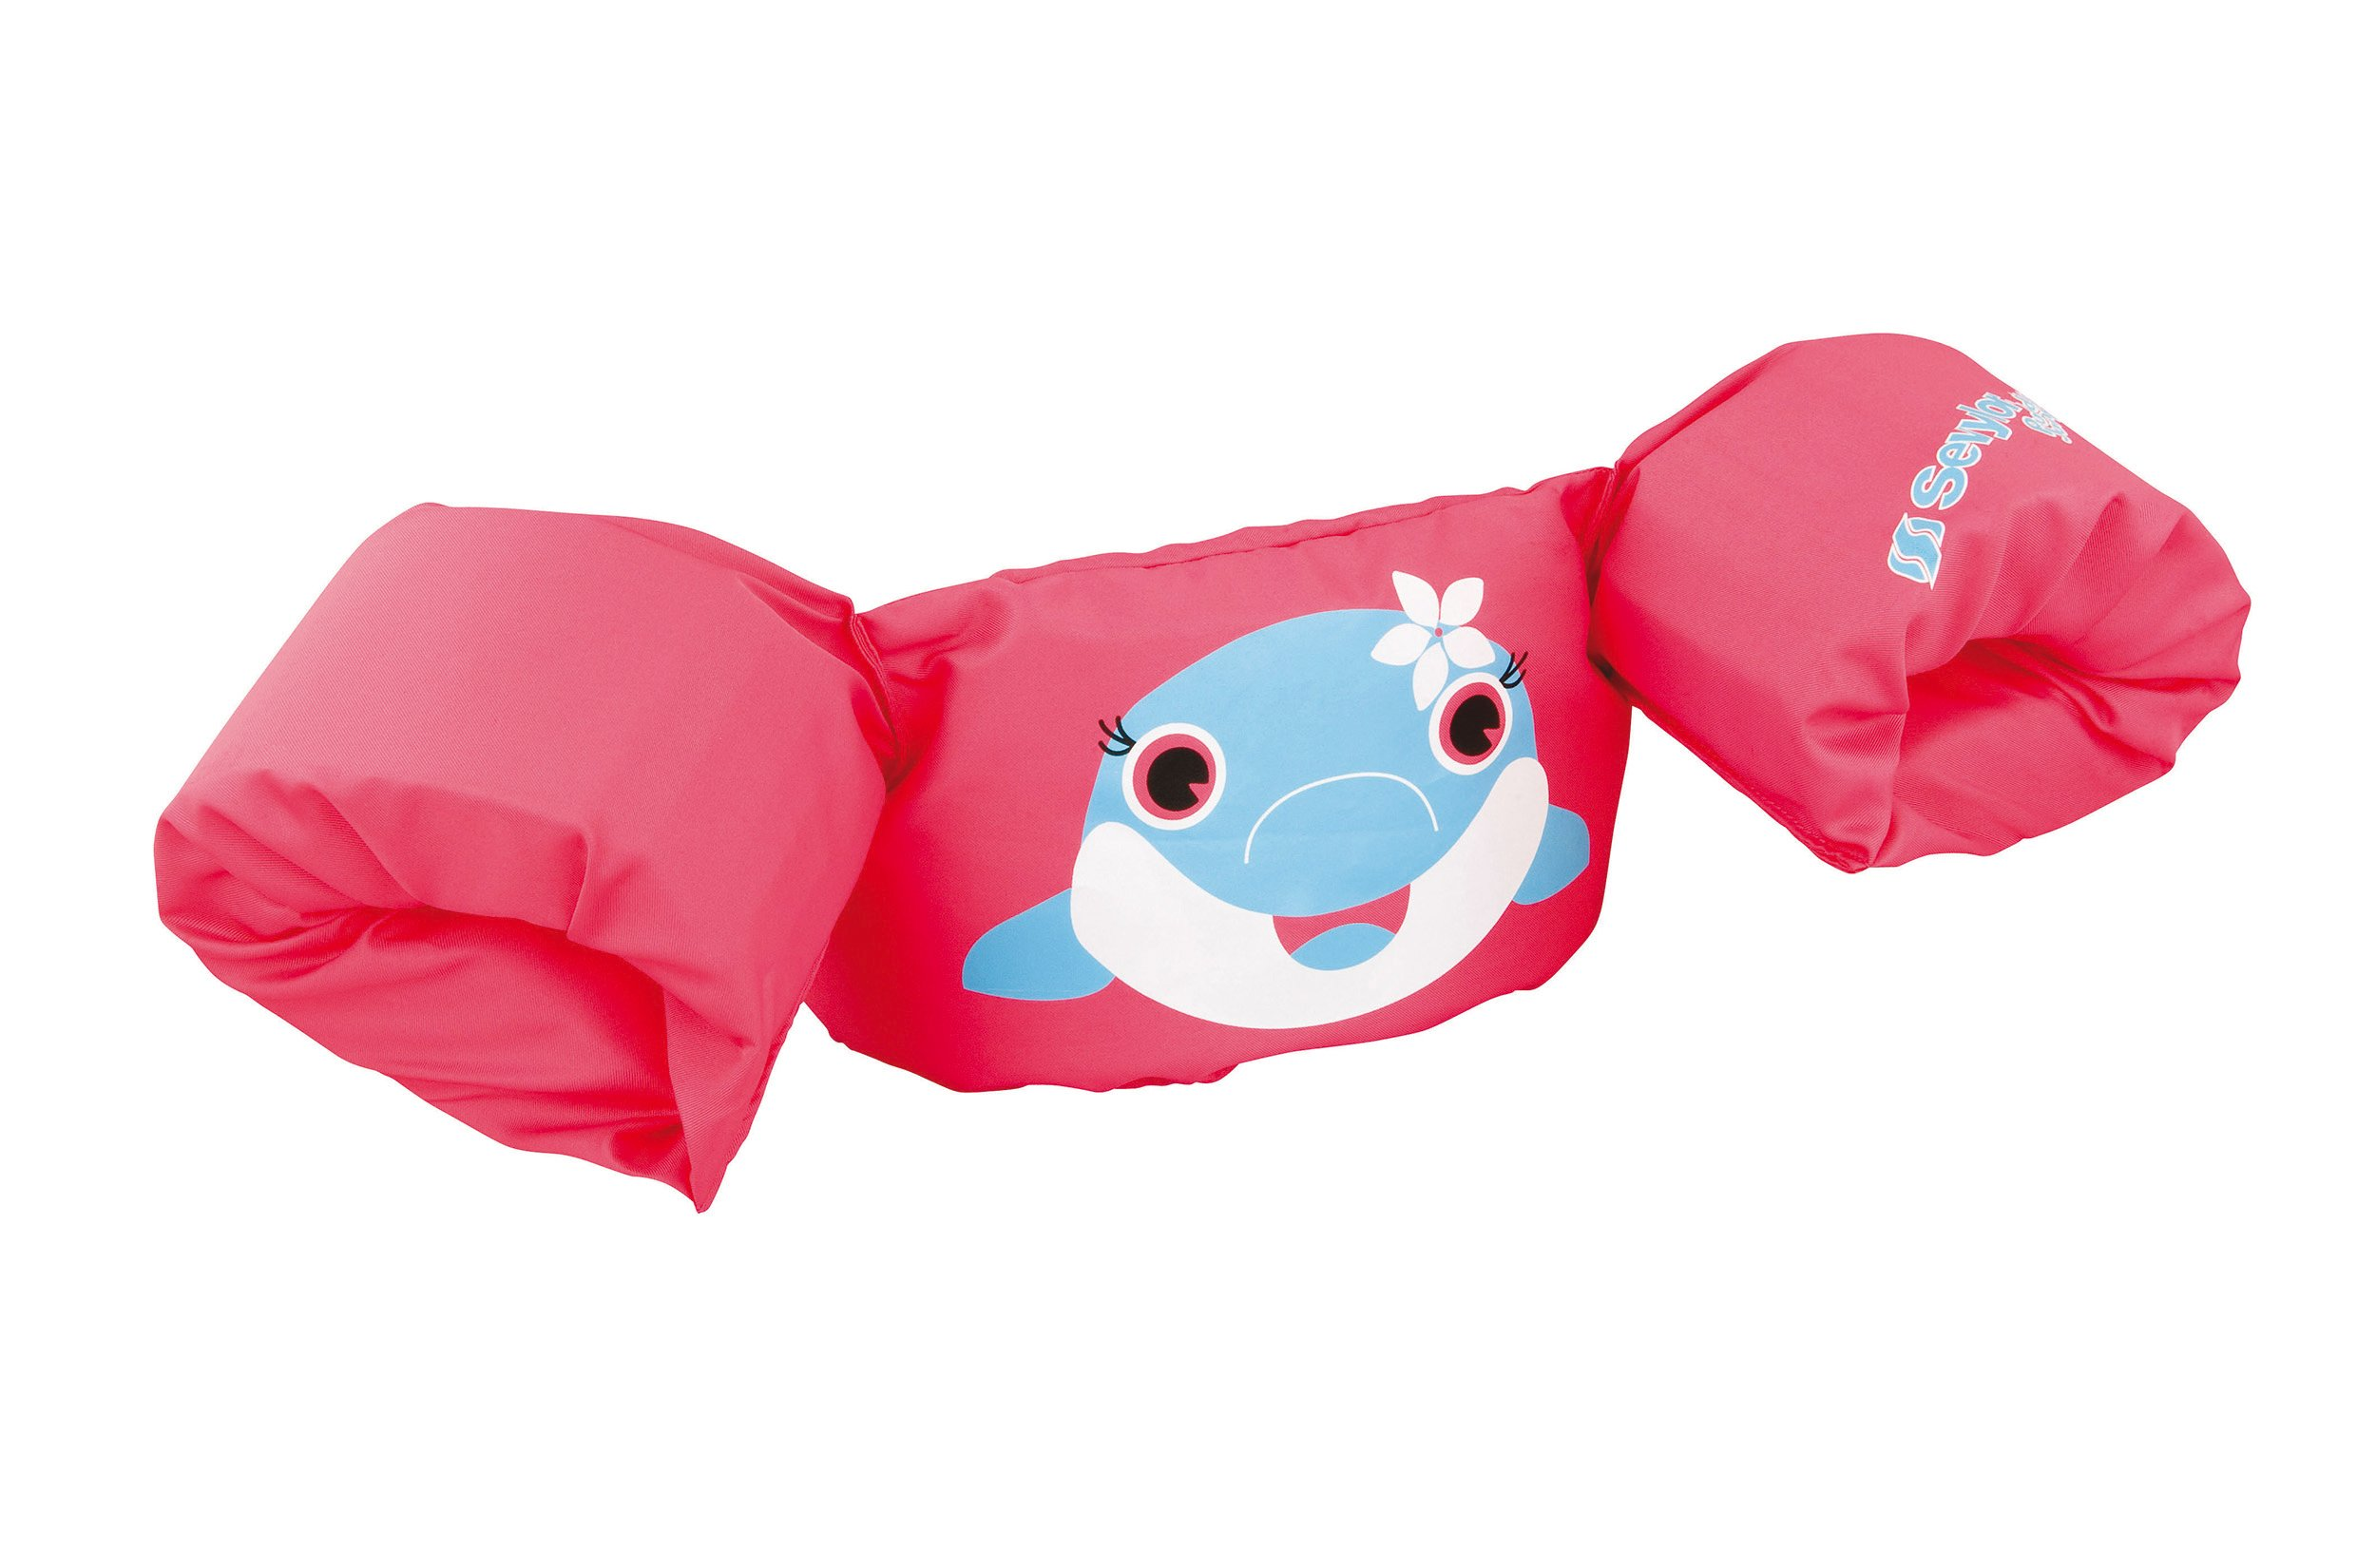 Sevylor The Original Puddle Jumper Brazo Floats, Todo el año, Infantil, Color Rosa